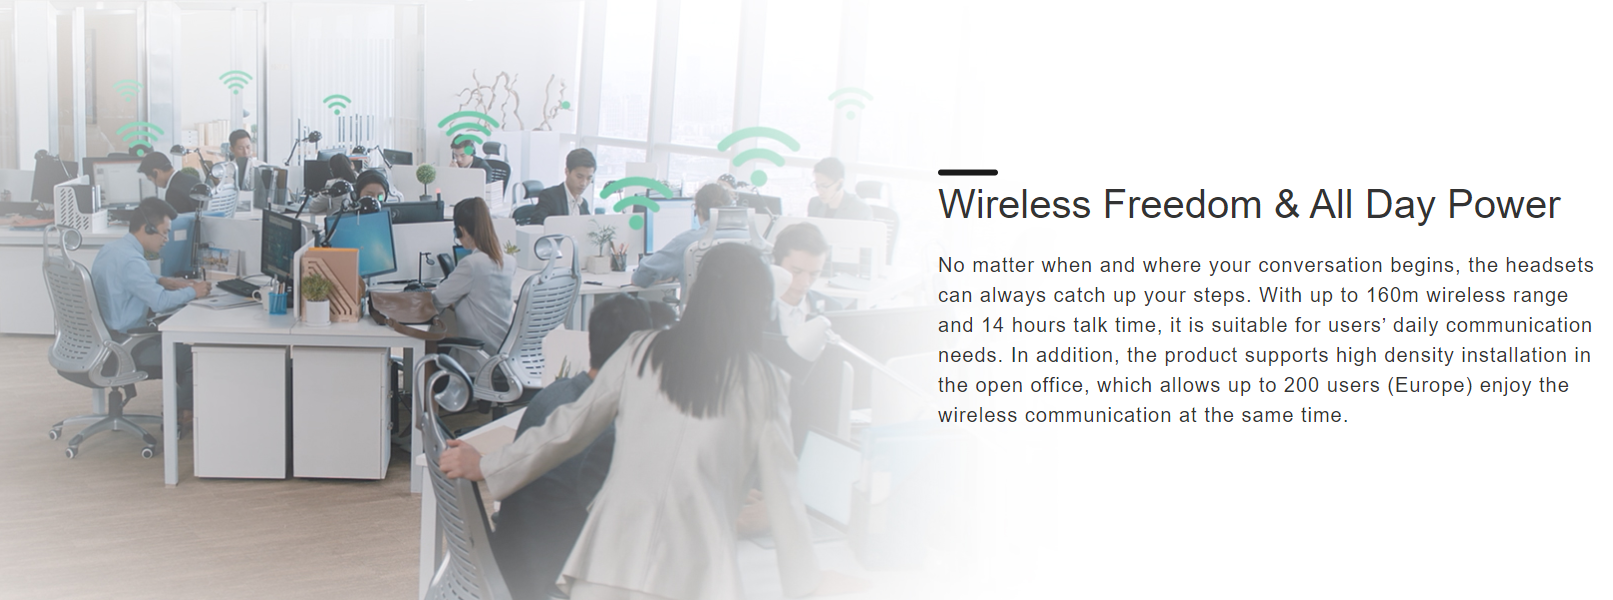 Yealink WH63 Convertible DECT Wireless Headset - Sipmax Hong Kong - 香港代理